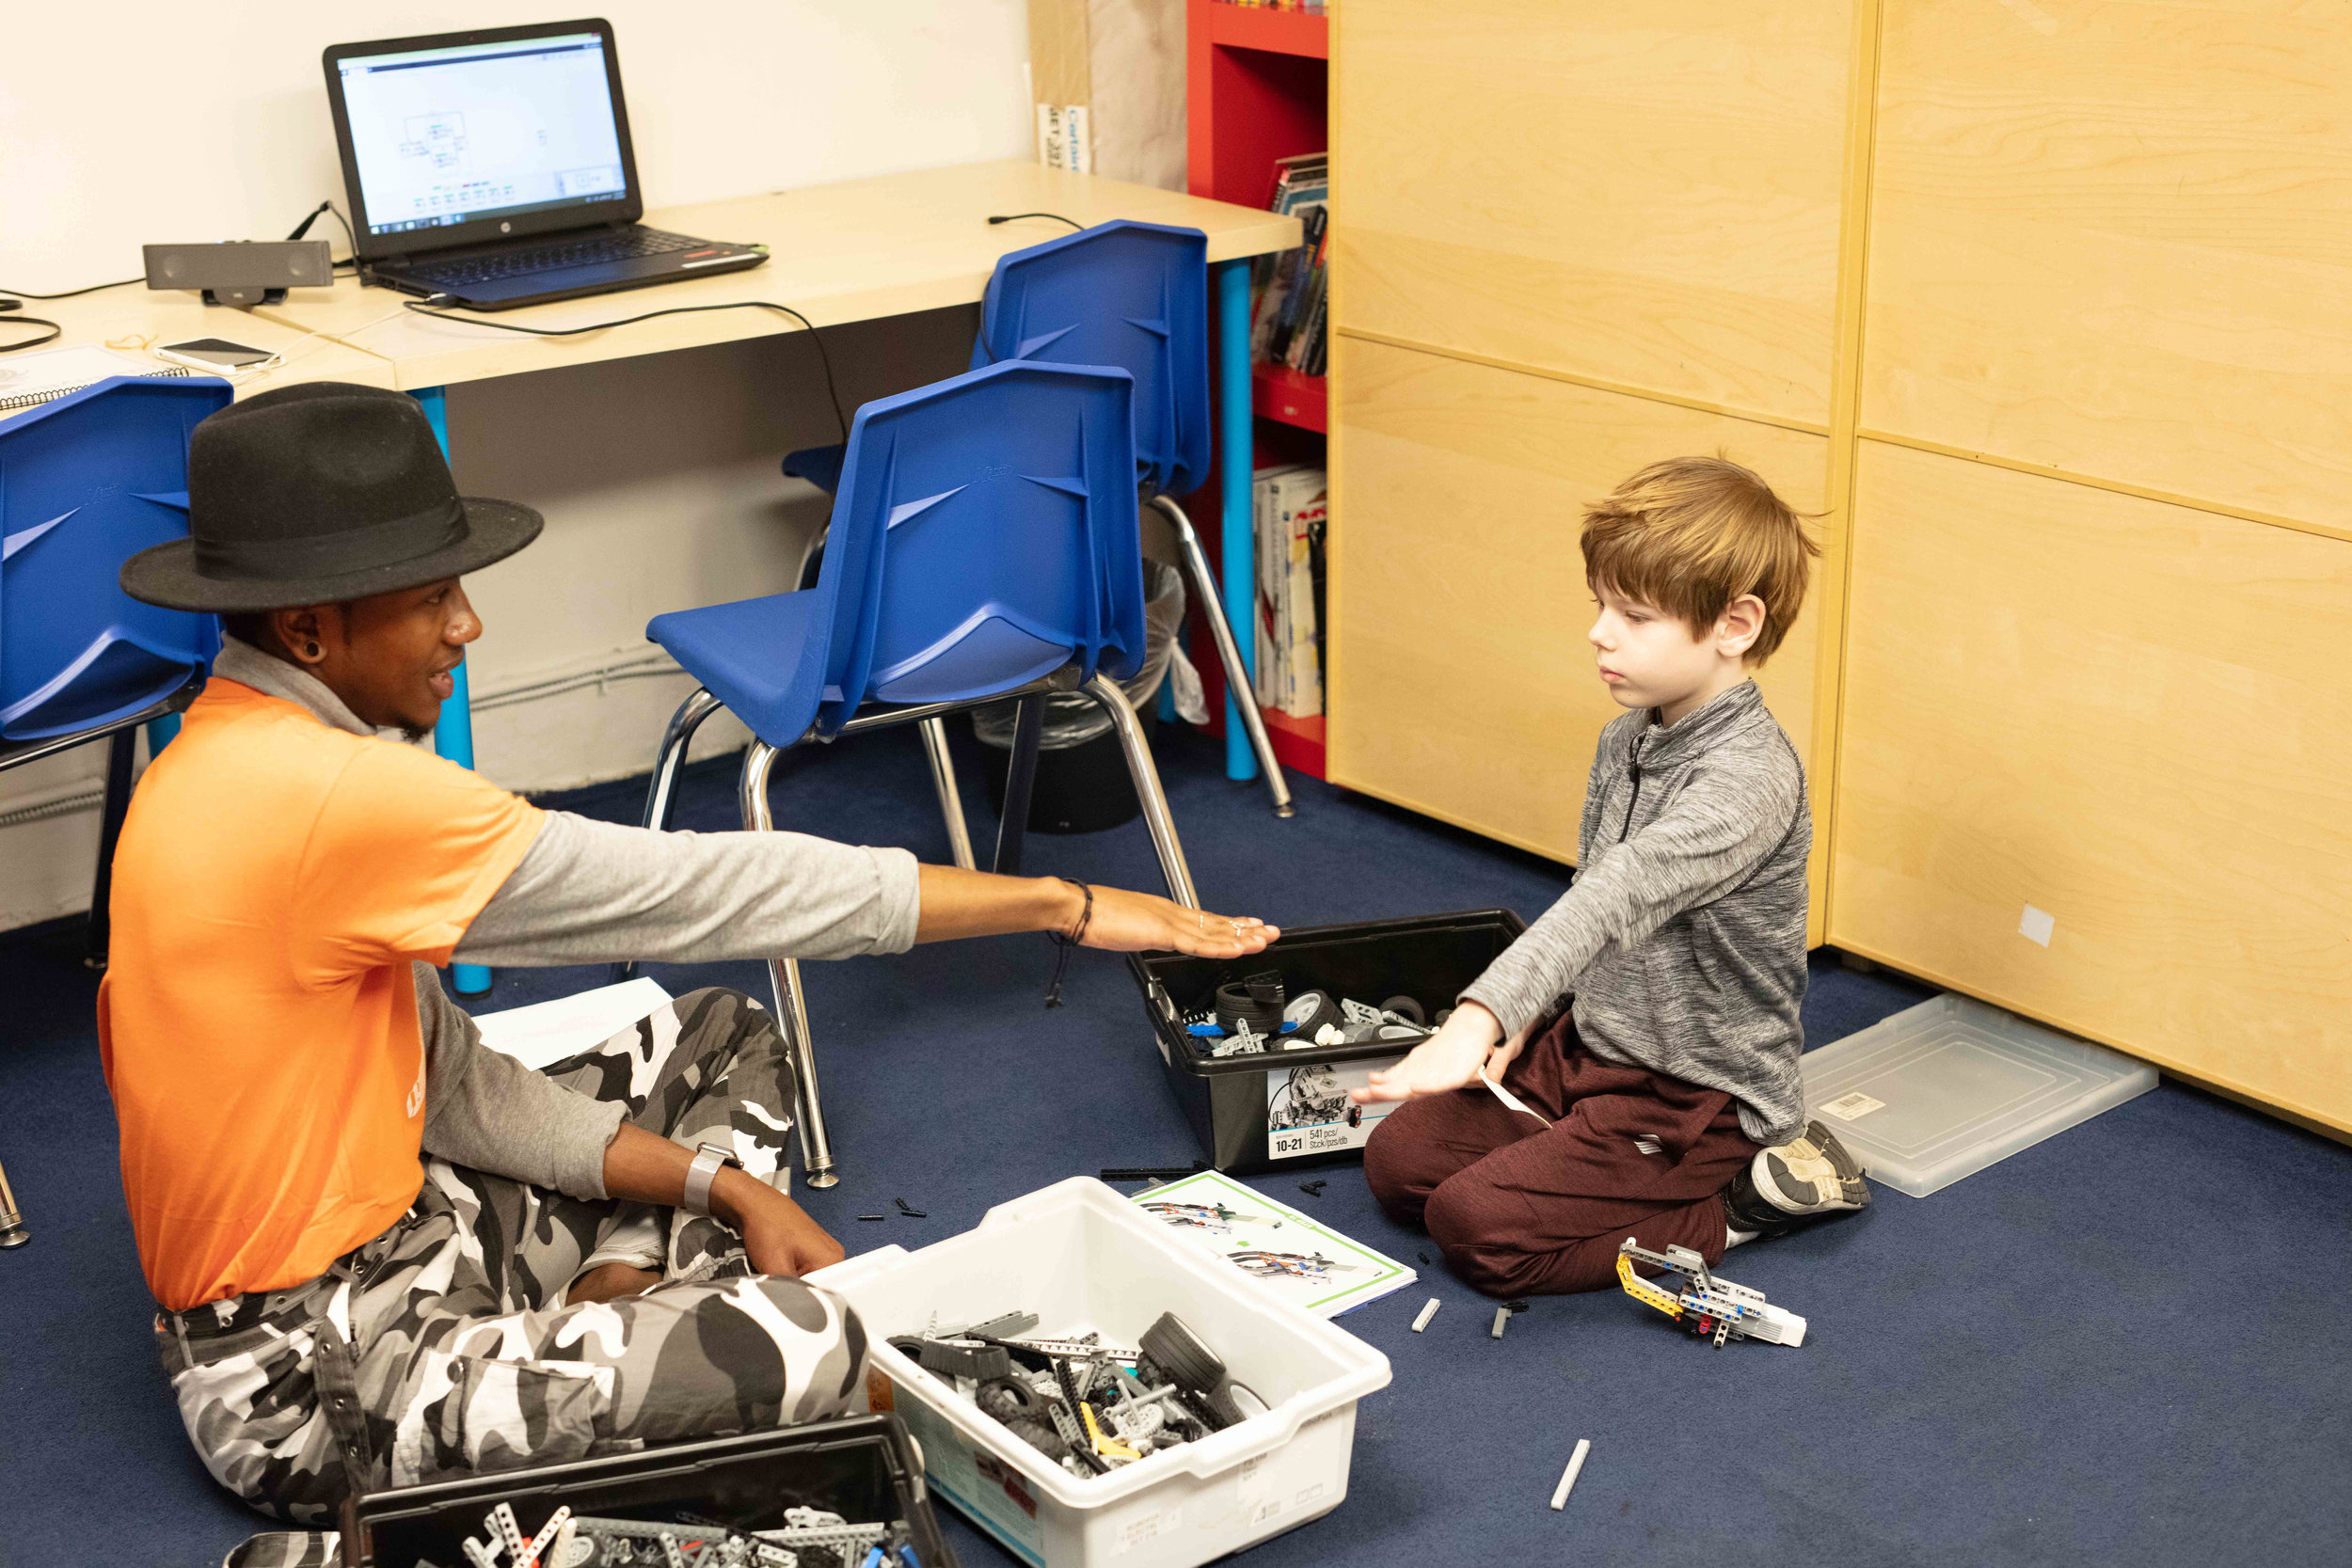 1. ROBOFUN TEACHER - As a RoboFun teacher, you will support kids as they design, code, create & troubleshoot LEGO→ robots, video games, web pages and stop motion animations. You will lead small after school clubs of 12 students or fewer on adventures they will never forget!